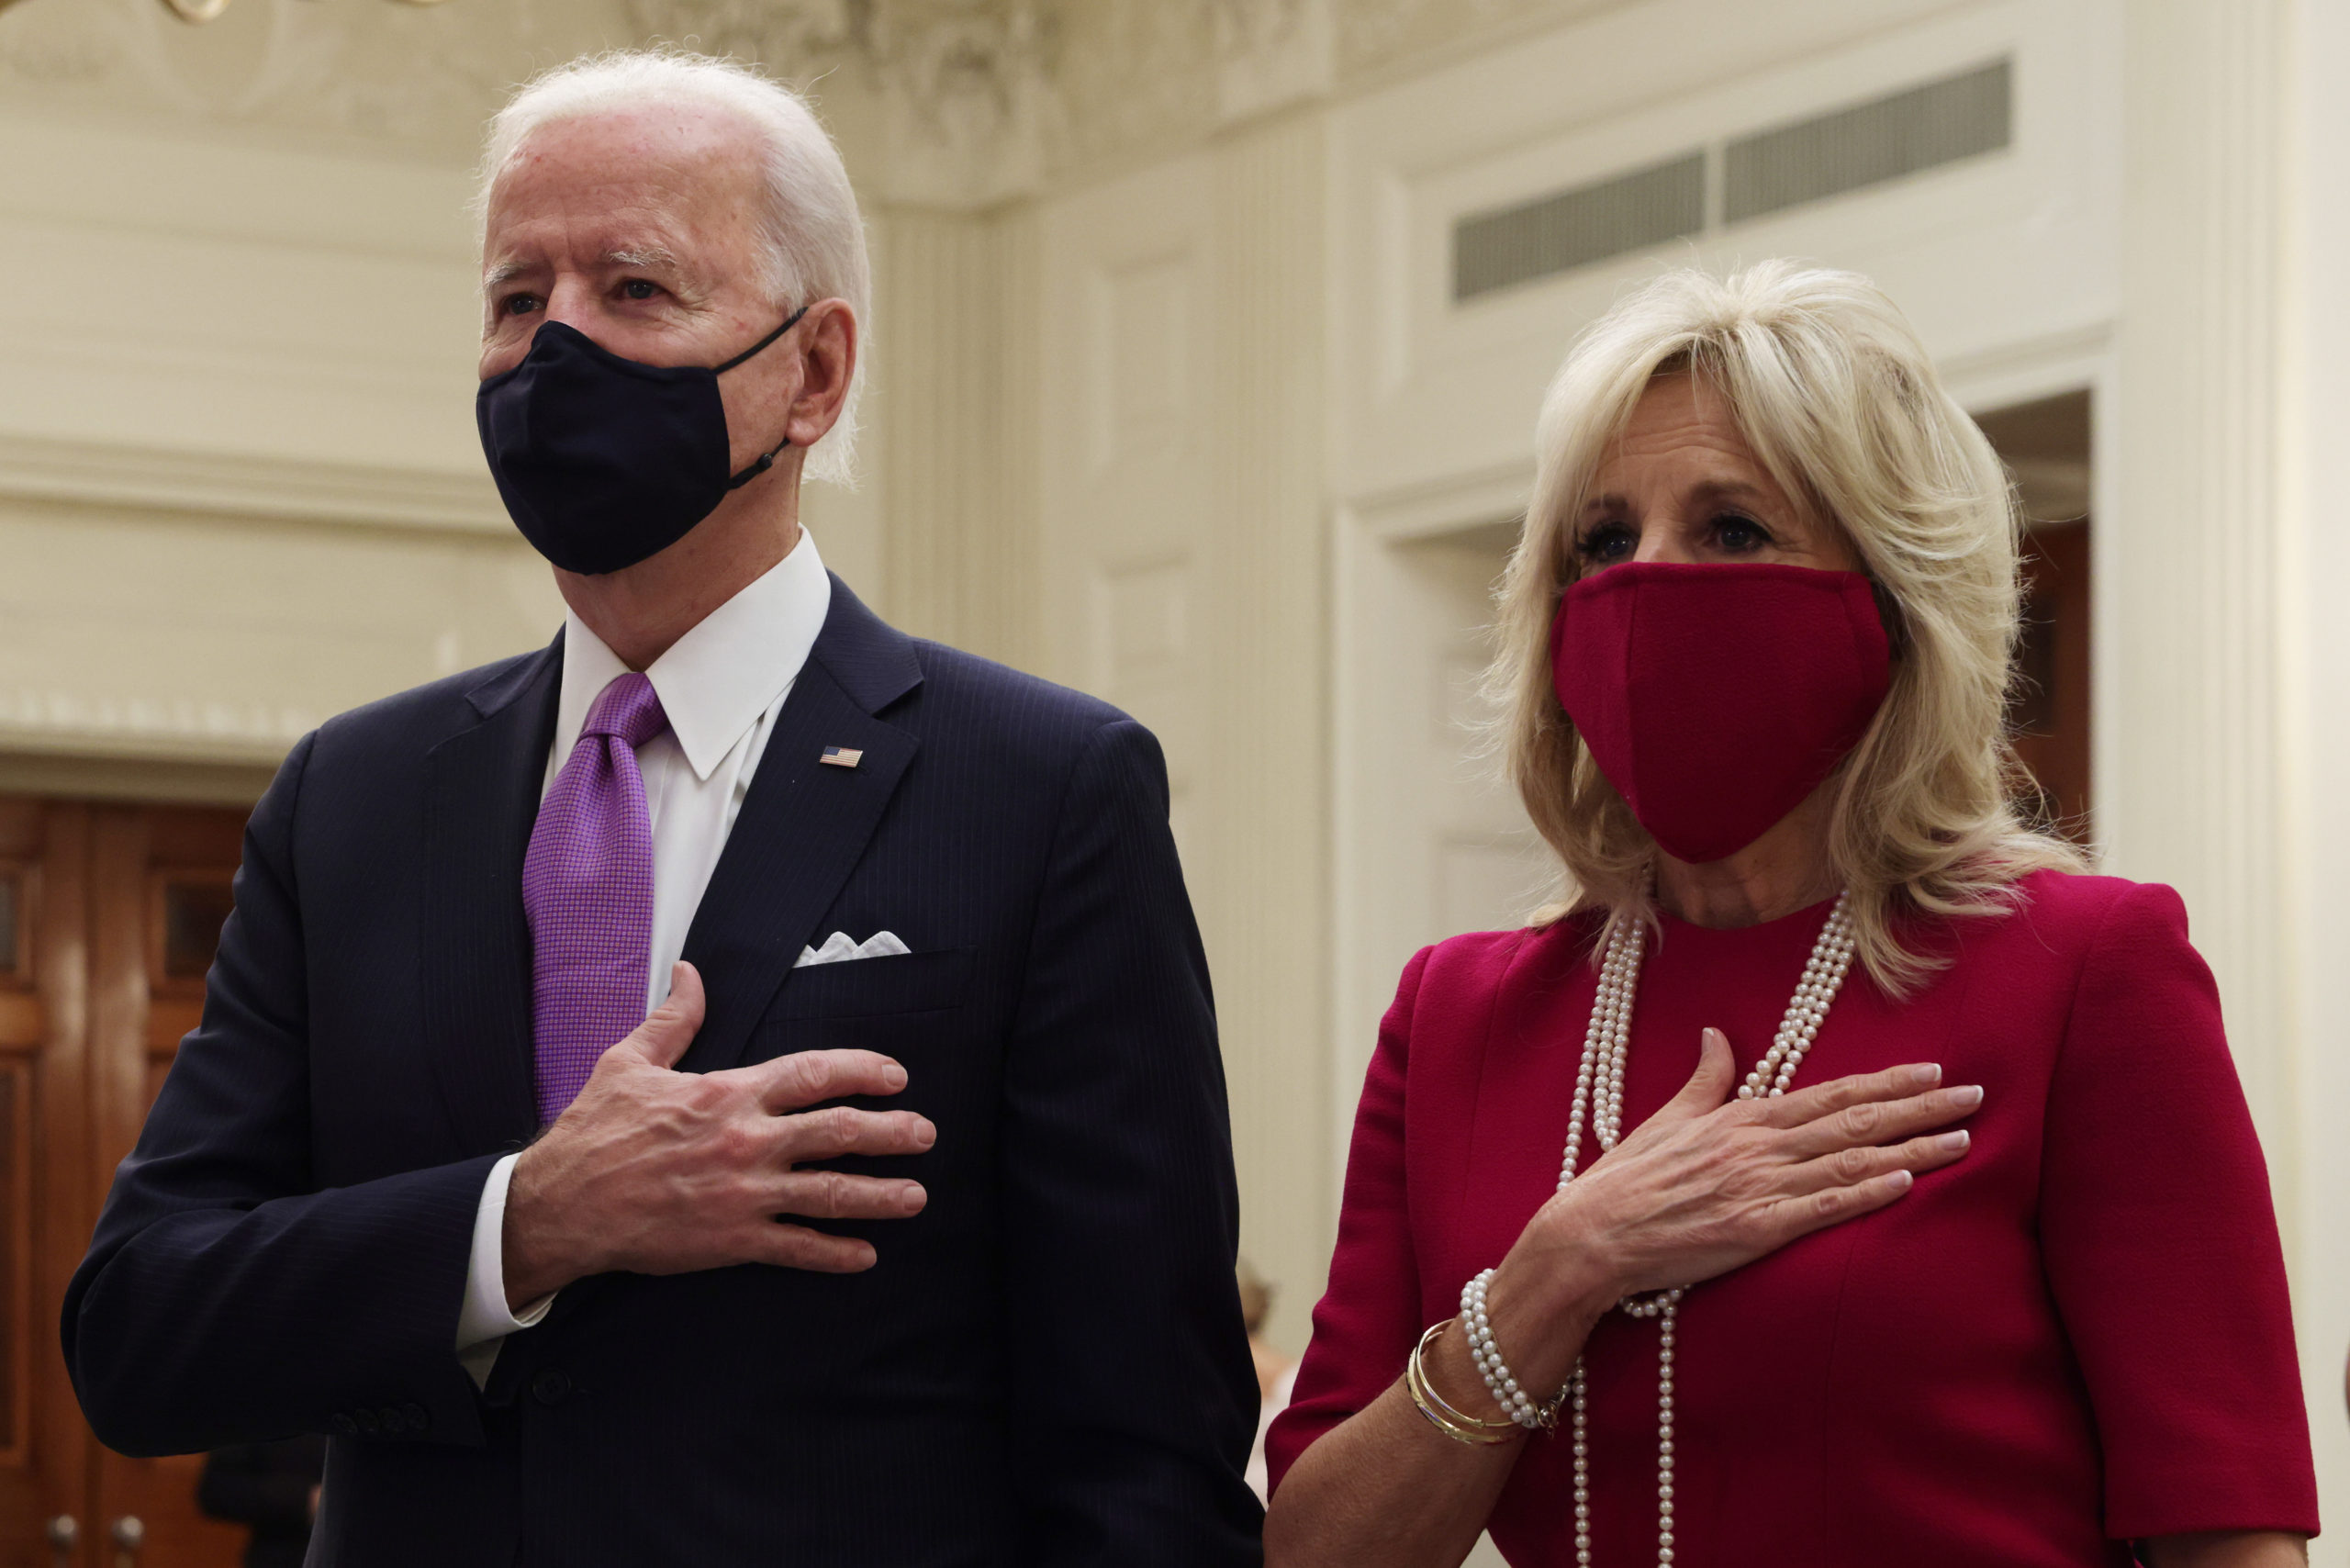 WASHINGTON, DC - JANUARY 21: U.S. President Joe Biden (L) and first lady Dr. Jill Biden listen to the national anthem as they watch the virtual presidential inaugural prayer service in the State Dining Room of the White House January 21, 2021 in Washington, DC. The prayer service, a tradition which dates back to the first inauguration of U.S. President George Washington, went virtual this year due to the COVID-19 pandemic. (Photo by Alex Wong/Getty Images)